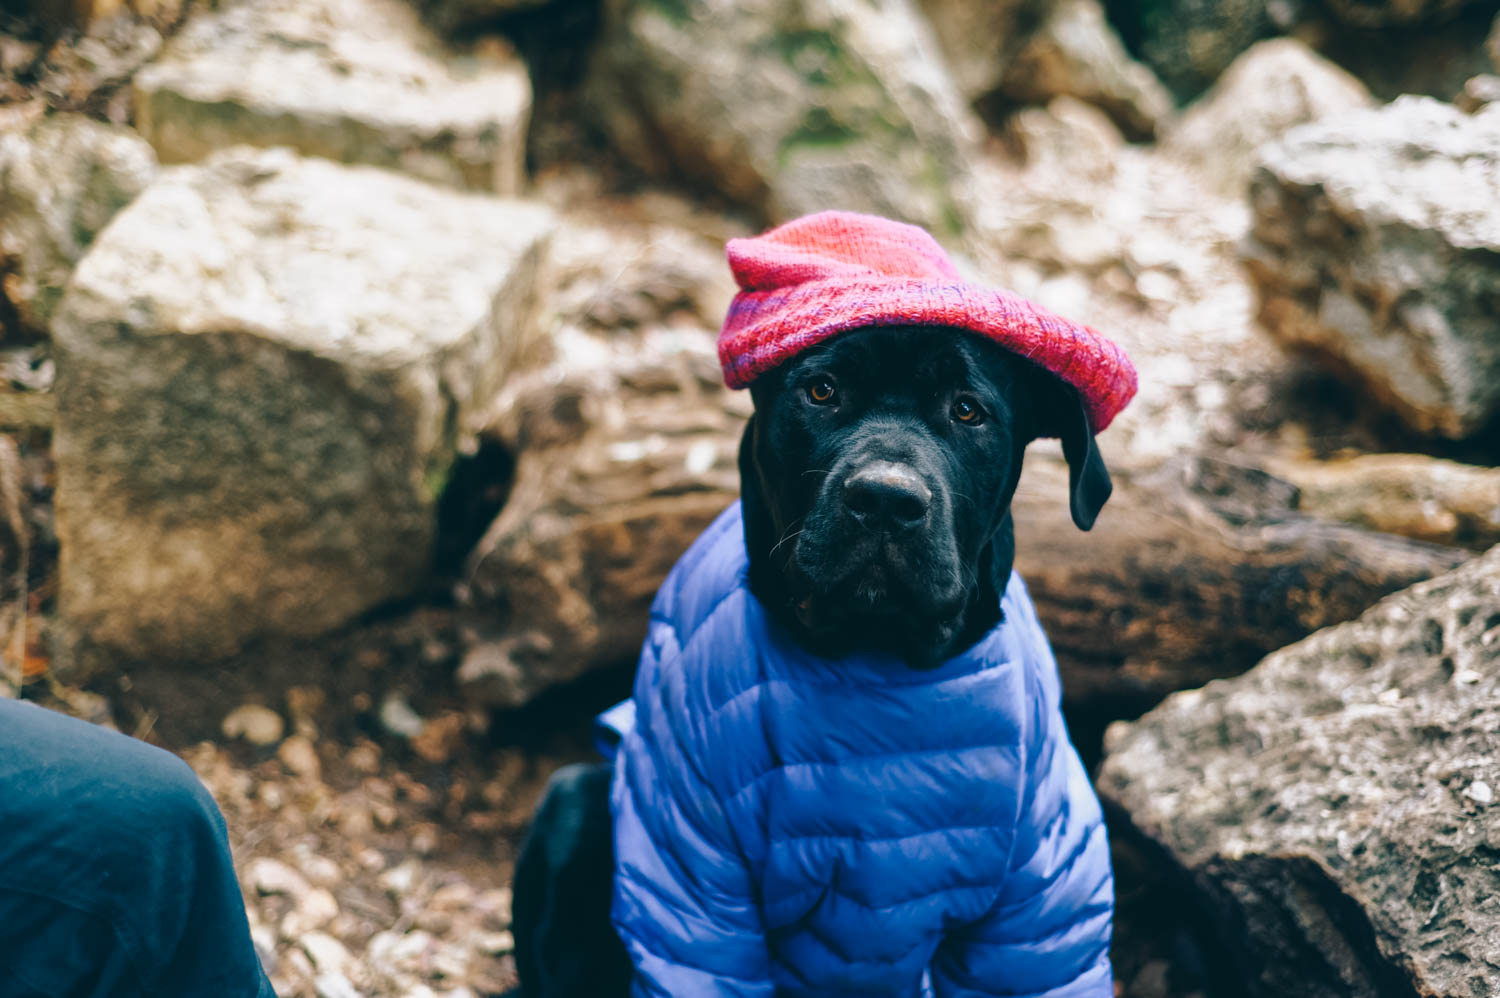 Someone was cold and wore a Patagonia jacket while we climbed.